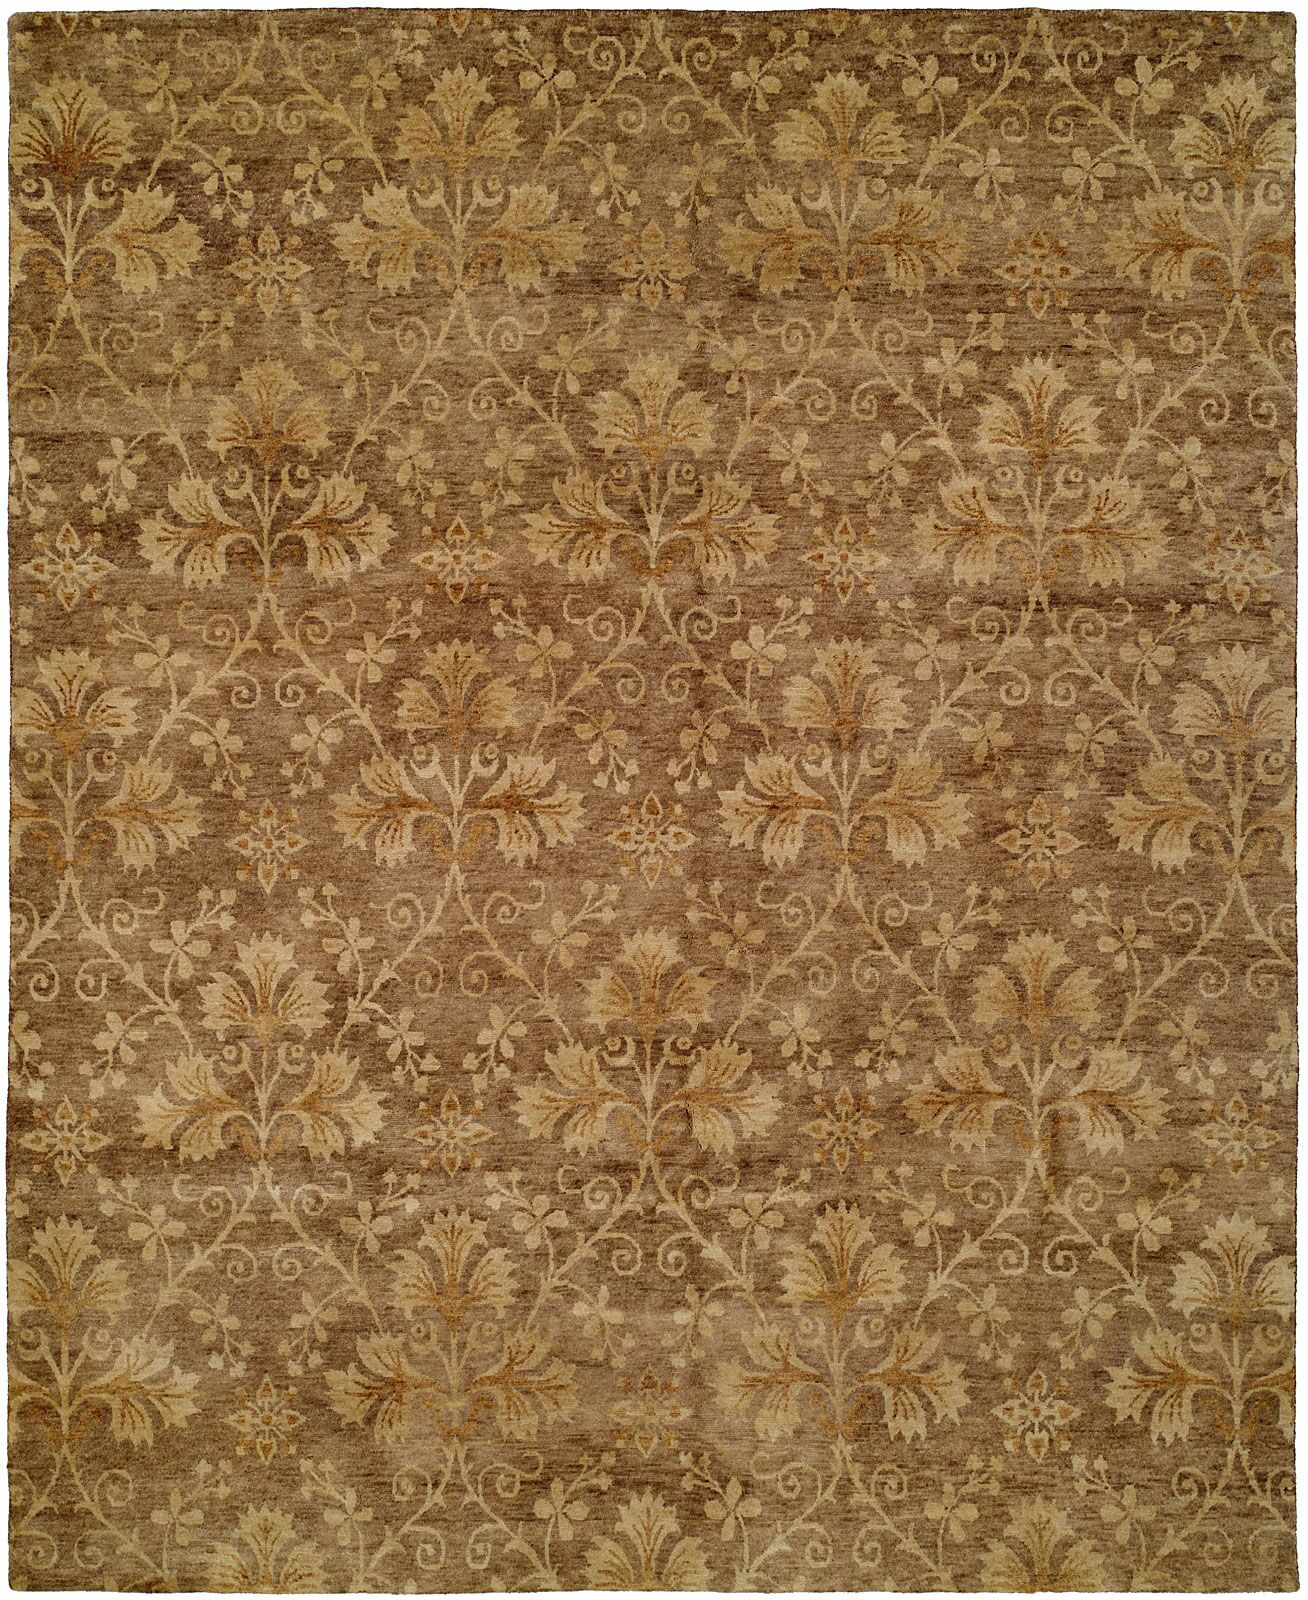 Dongying Hand-Knotted Brown Area Rug Rug Size: Square 10'